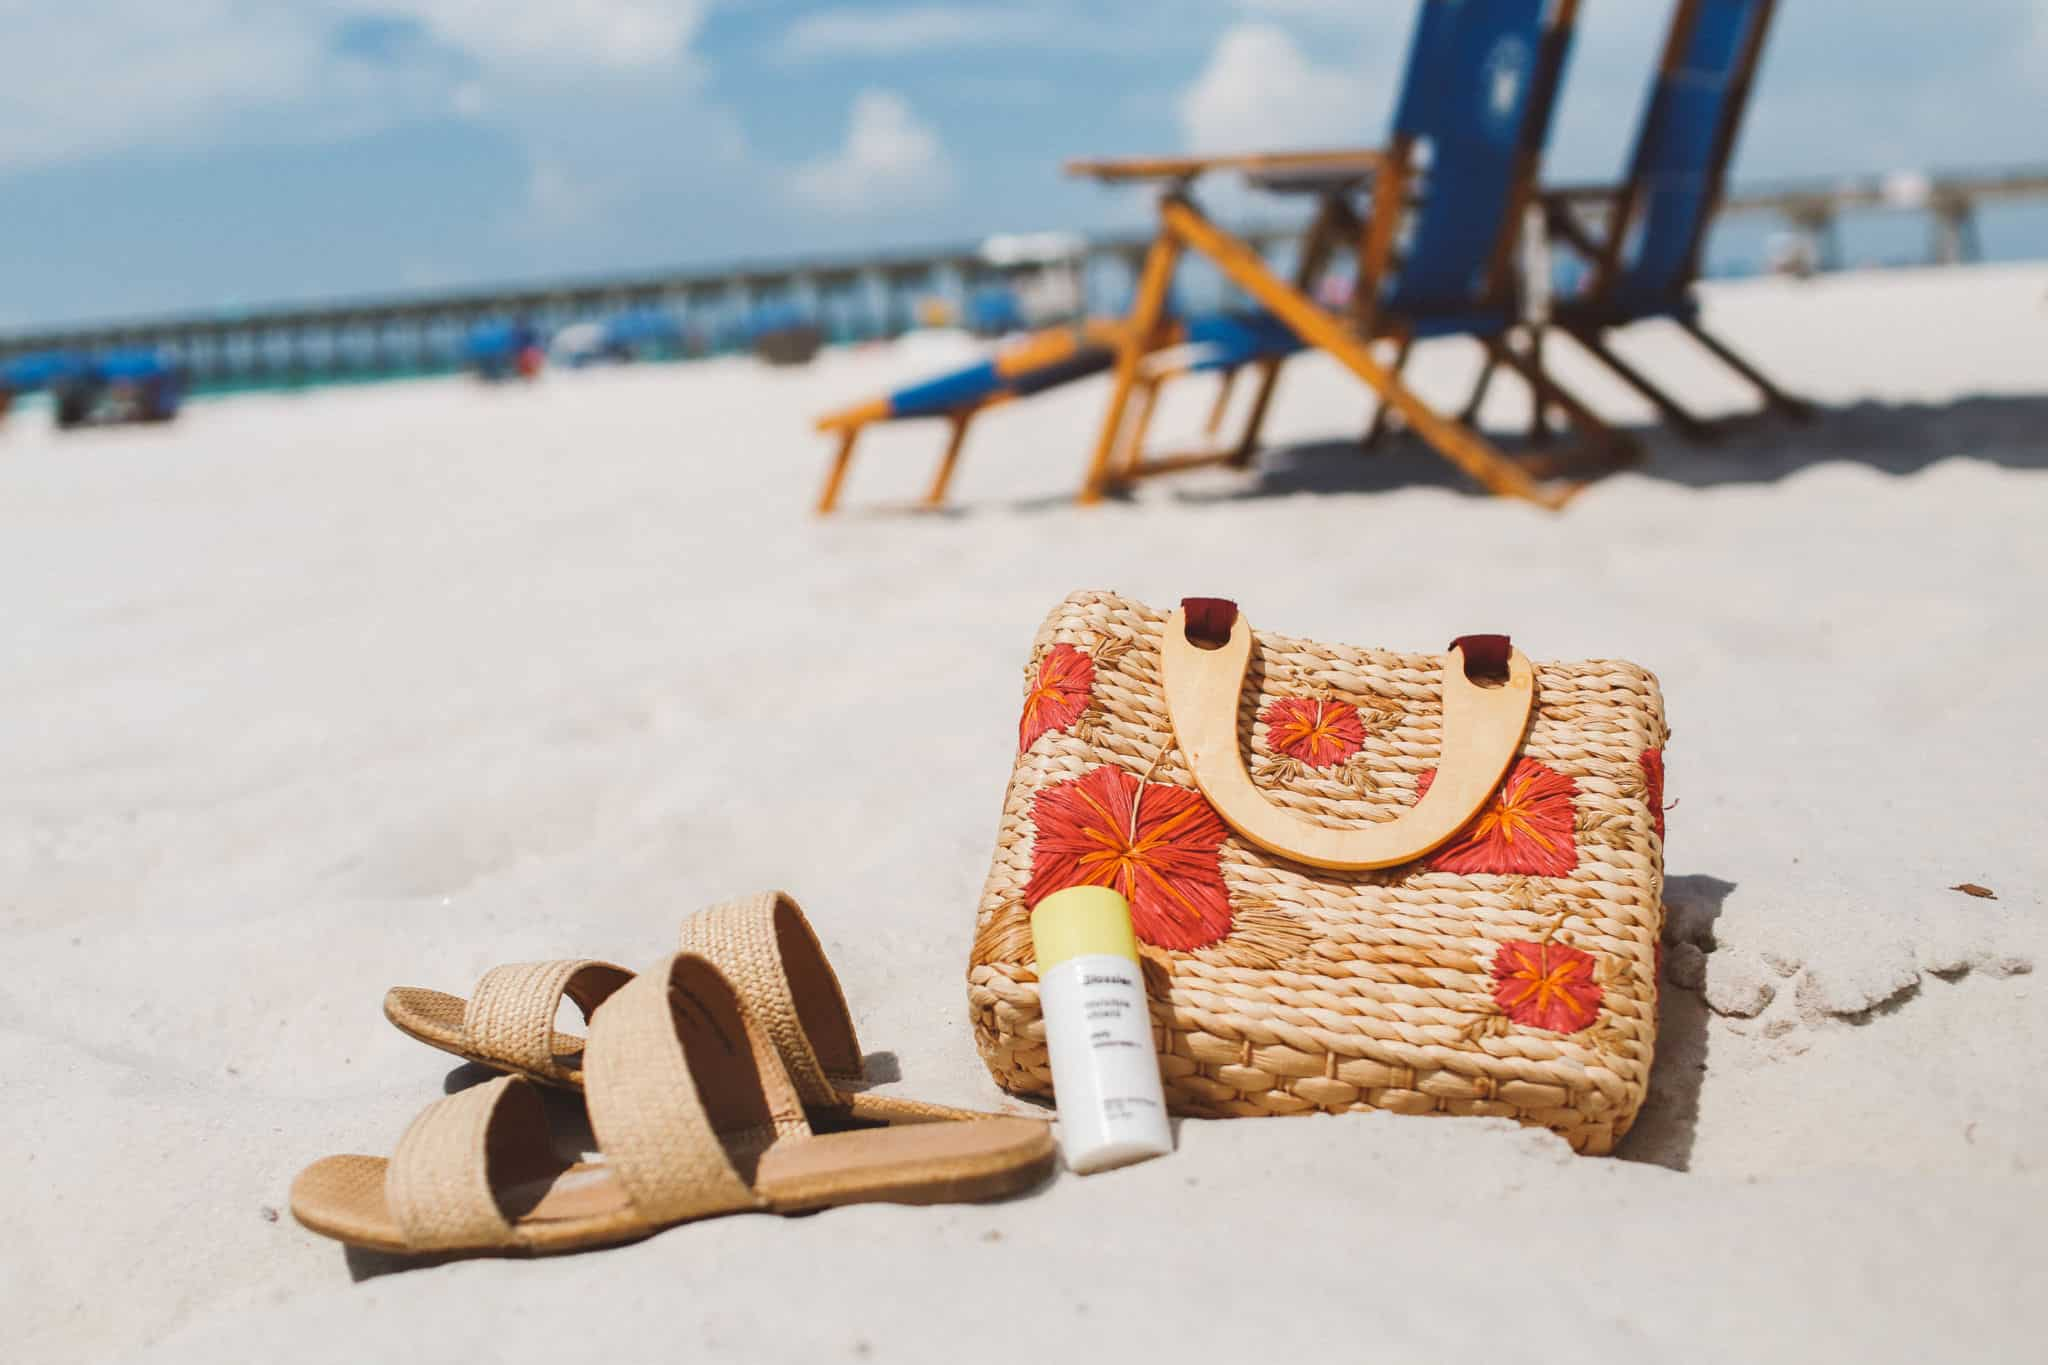 sandals, sunscreen and a floral straw purse on the sand